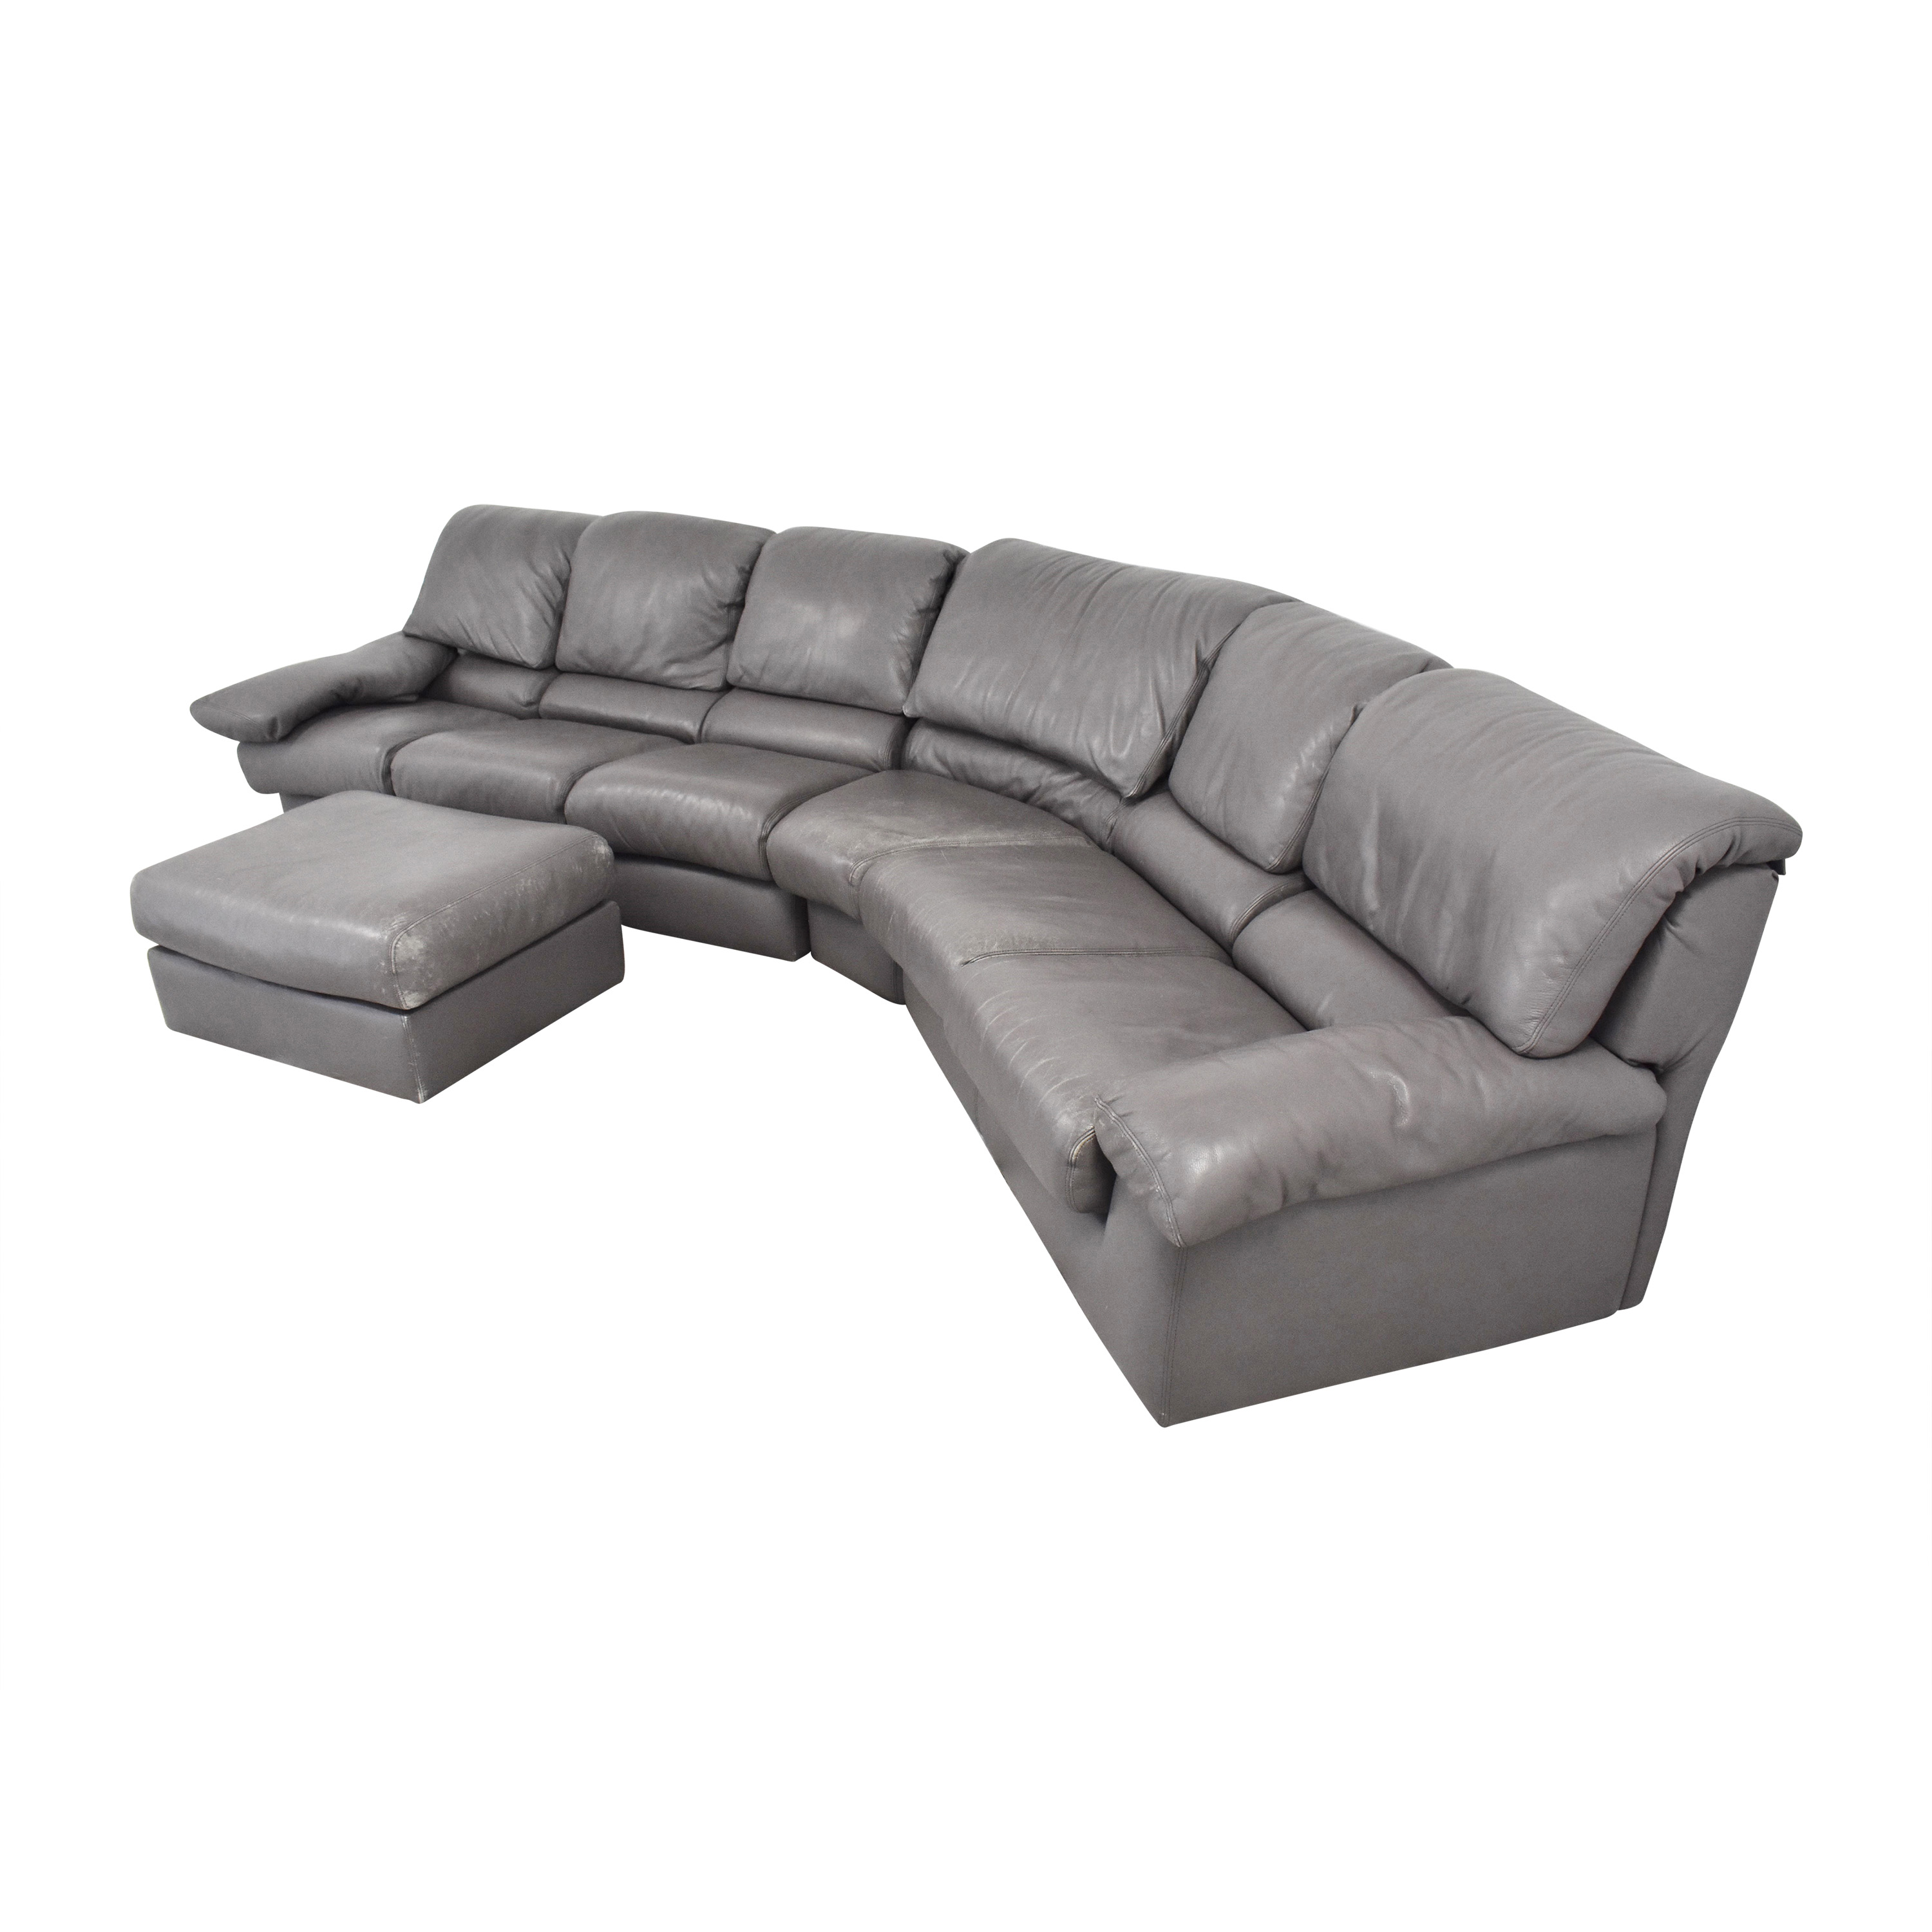 Leather Center Leather Center Curved Sectional Sofa with Ottoman coupon